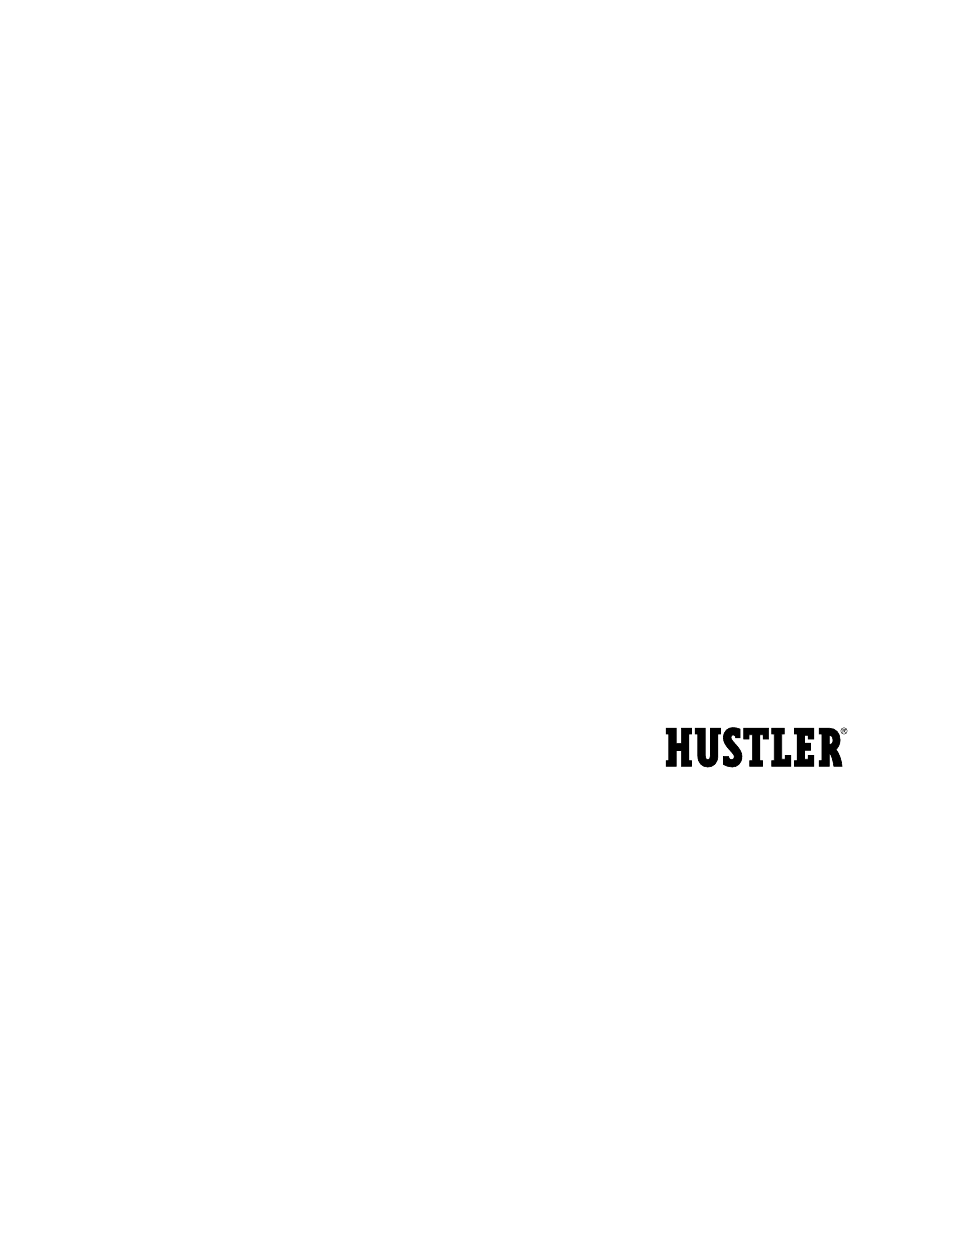 Free owners manual excel hustler 320